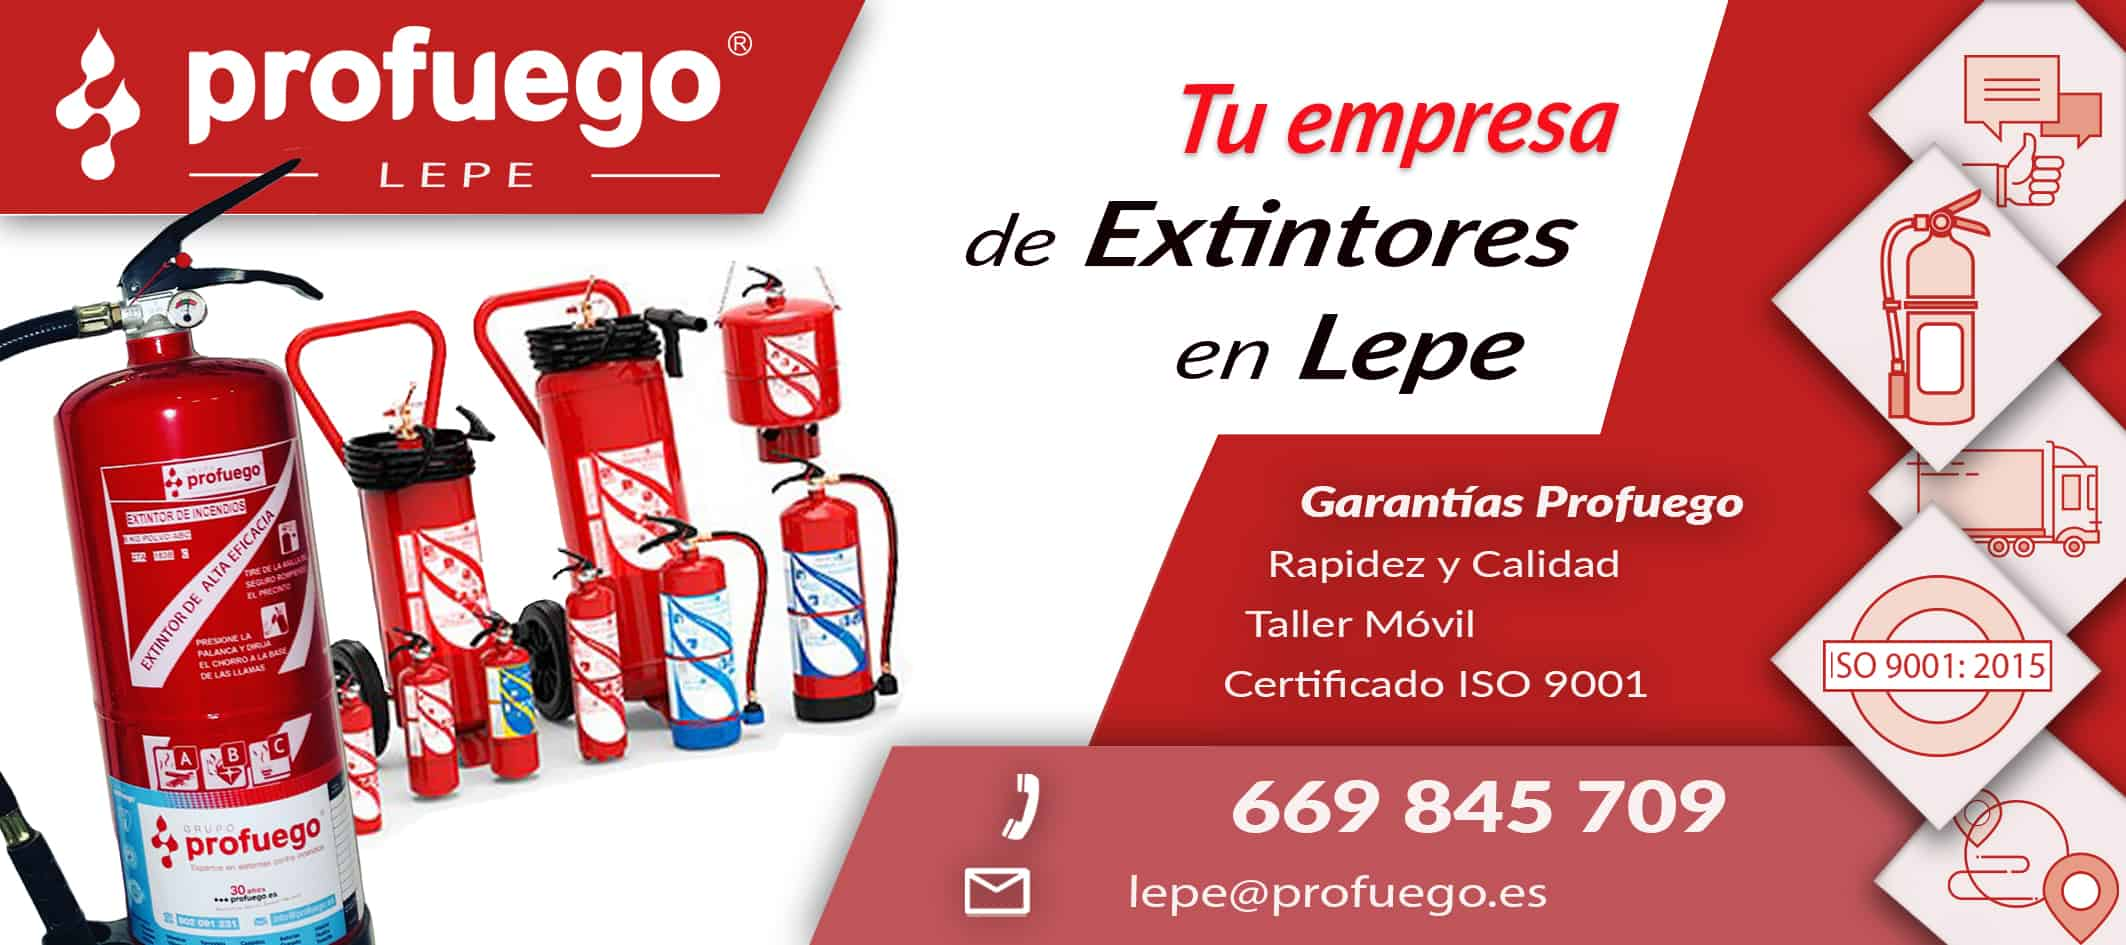 extintores lepe